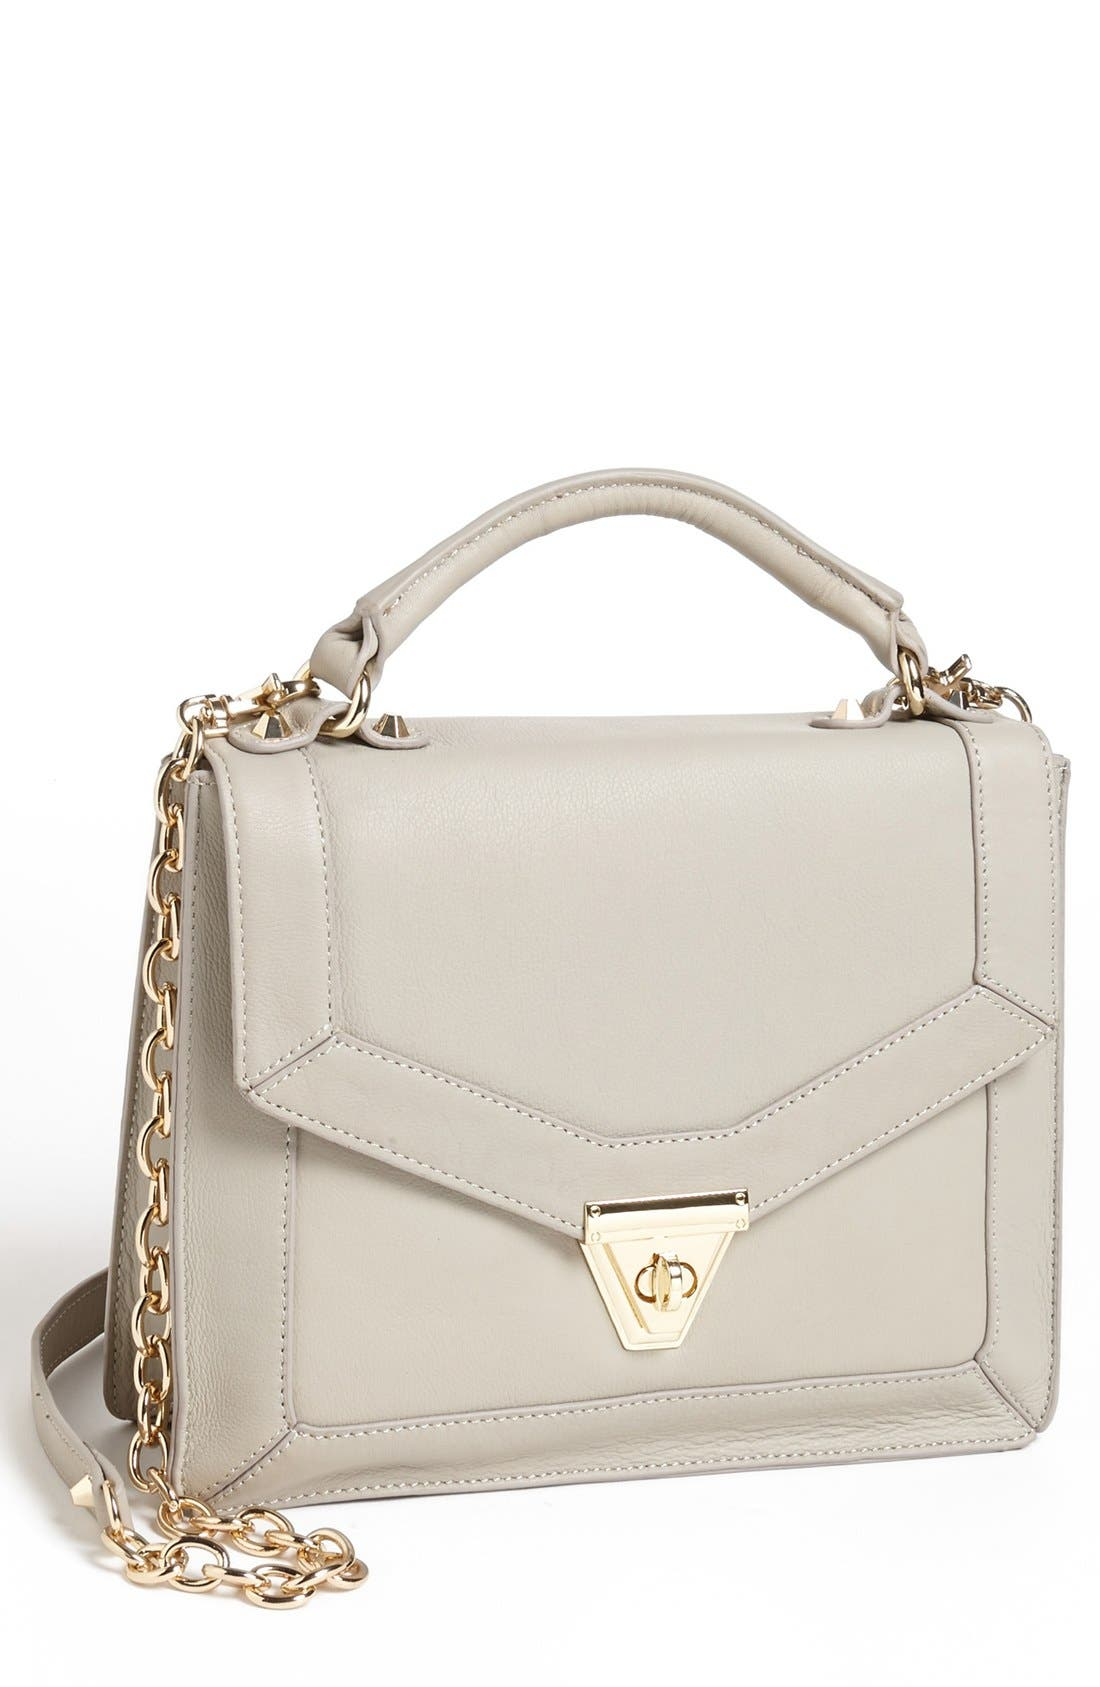 Alternate Image 1 Selected - Sole Society 'Lisette - Medium' Shoulder Bag